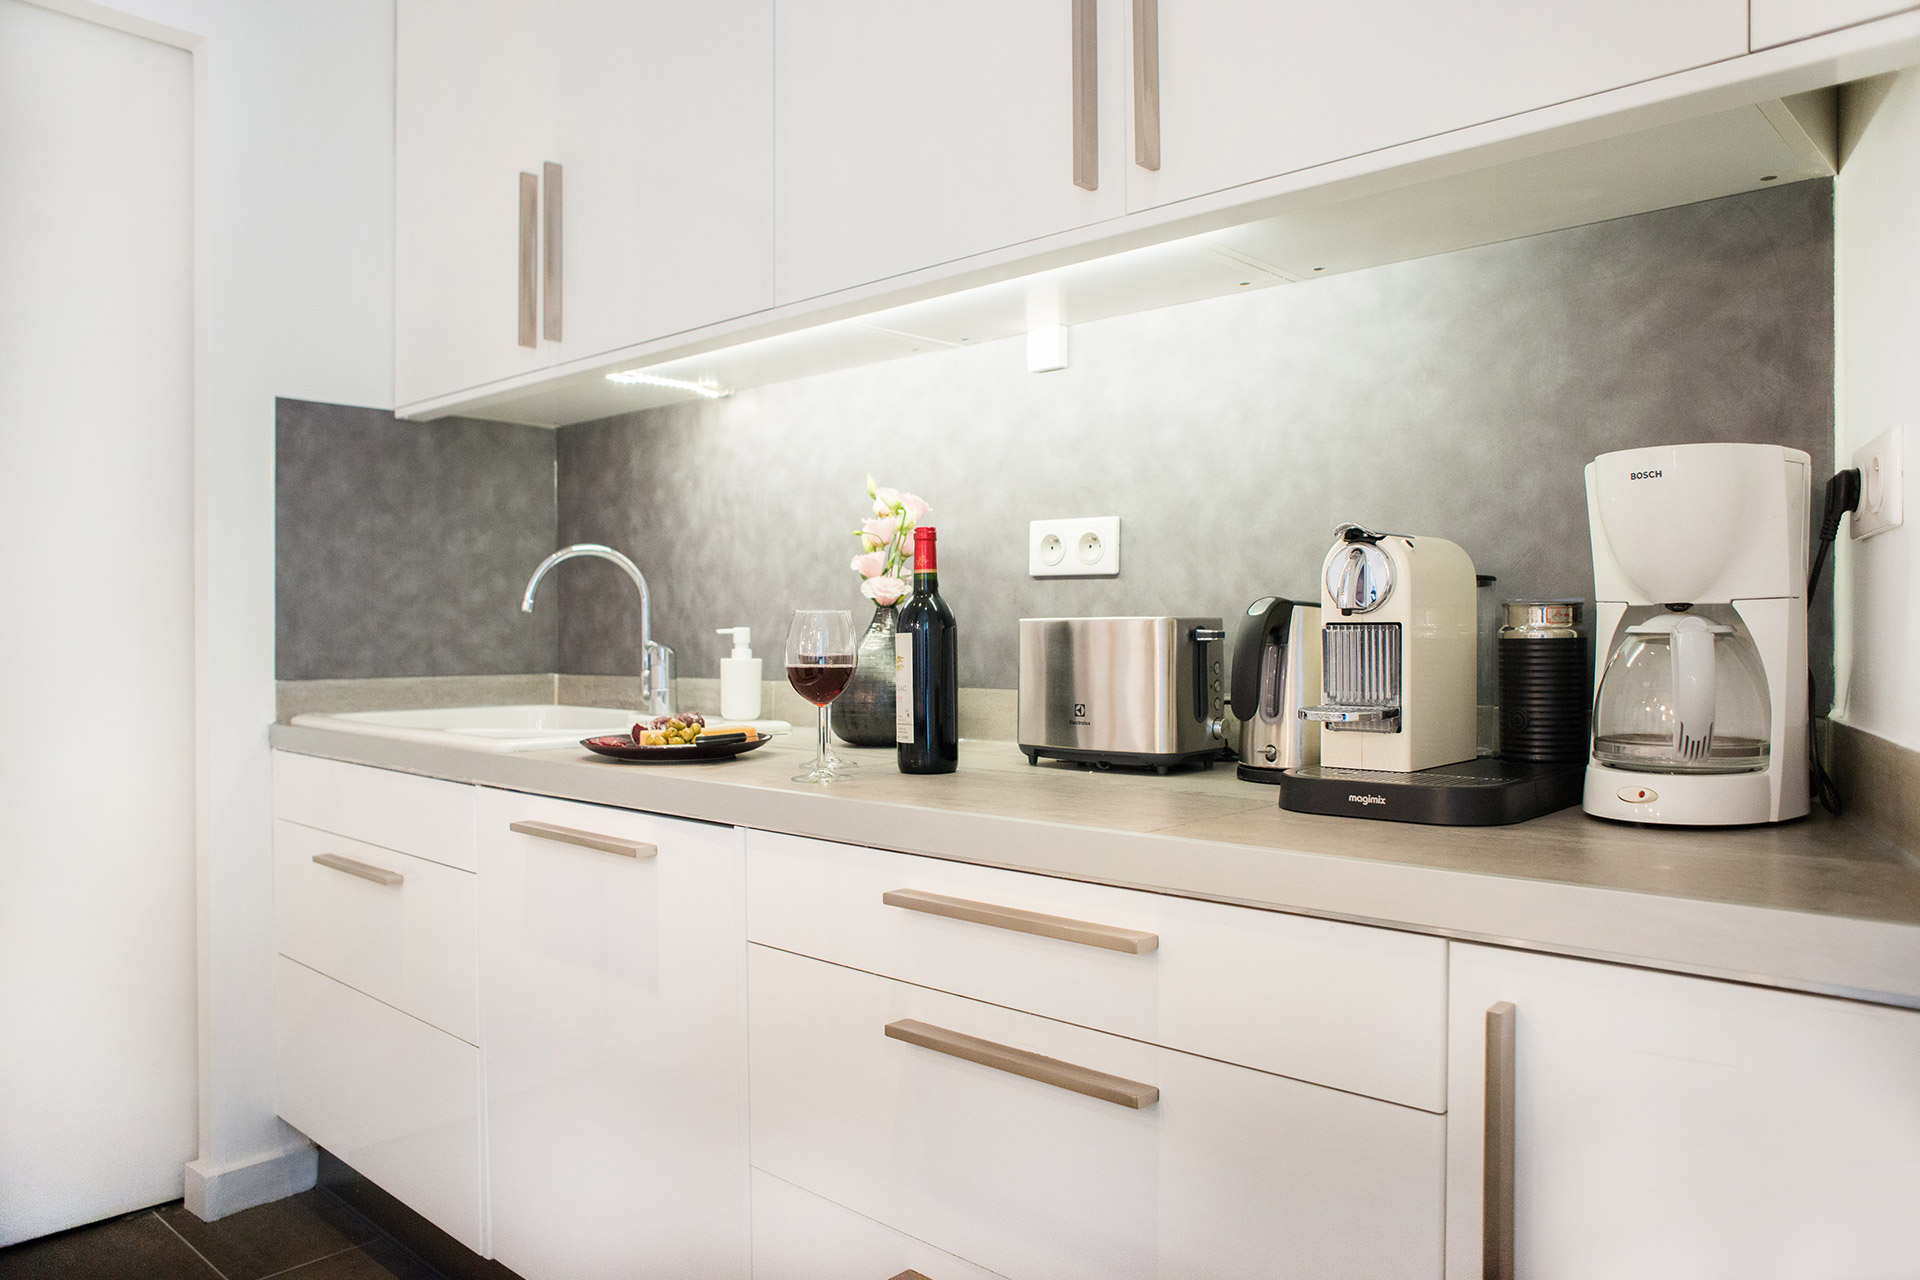 Fully equipped modern kitchen of the Monplaisir vacation rental by Paris Perfect